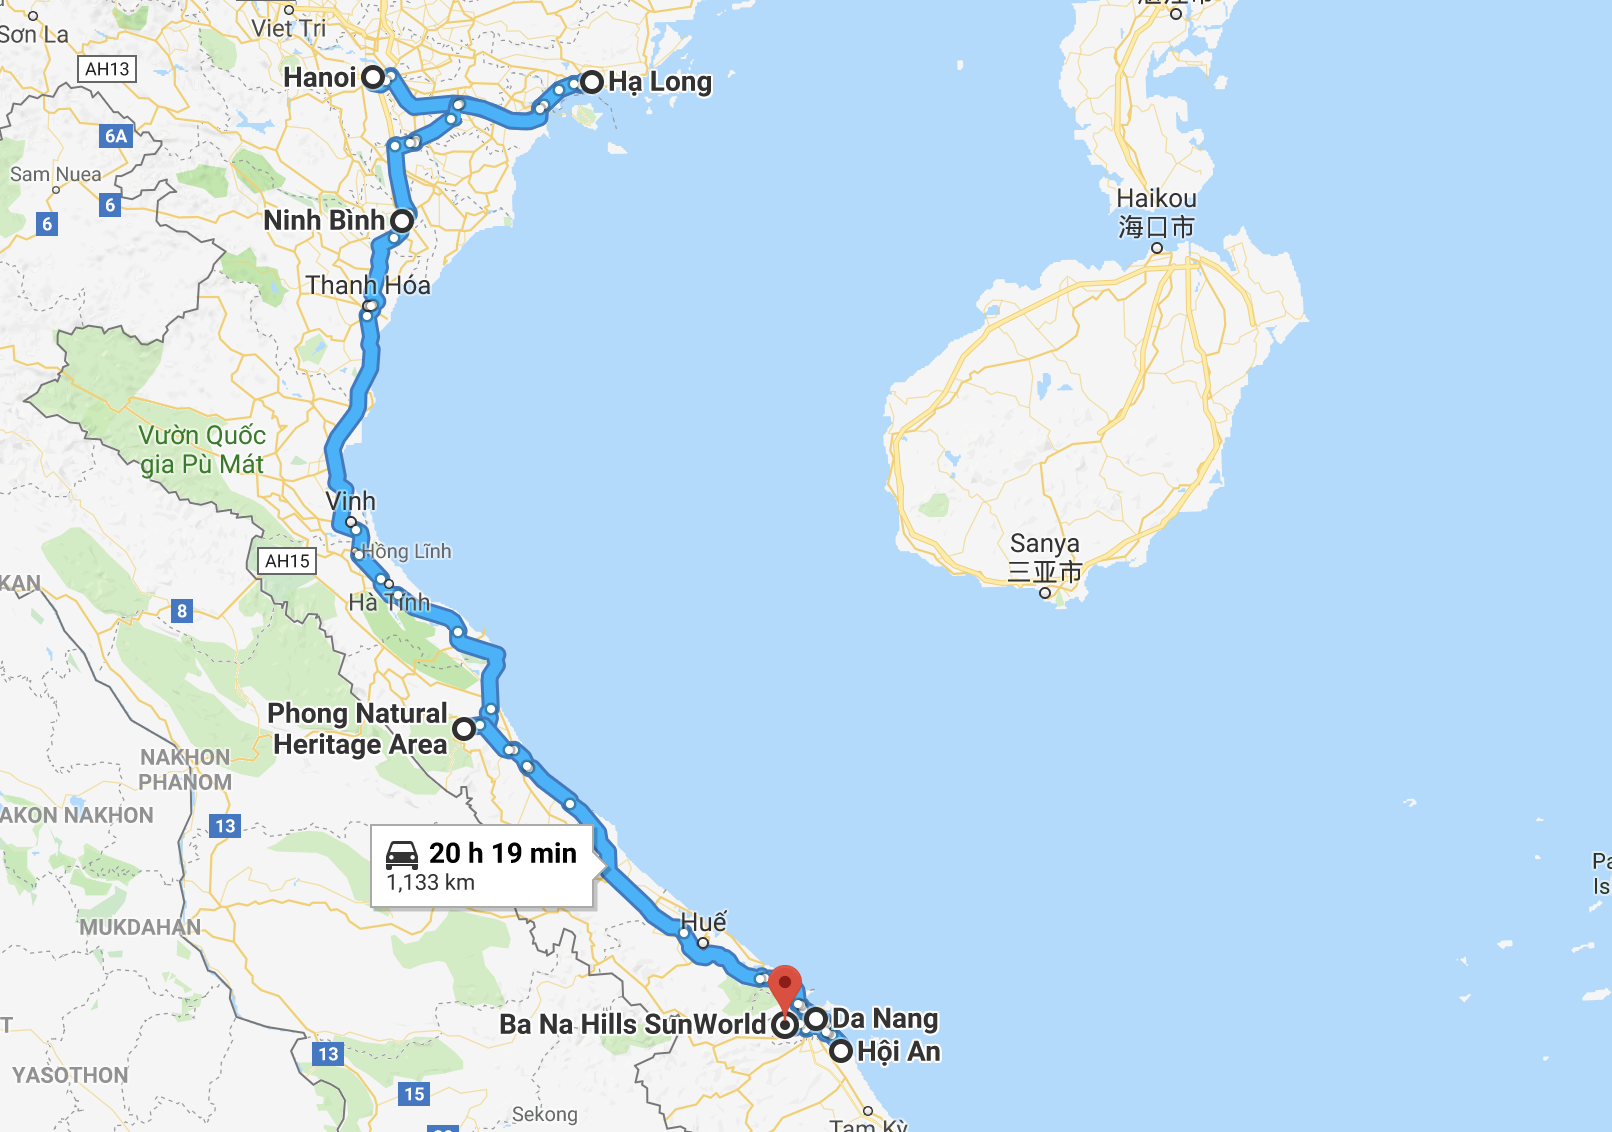 Vietnam Itinerary Route Map